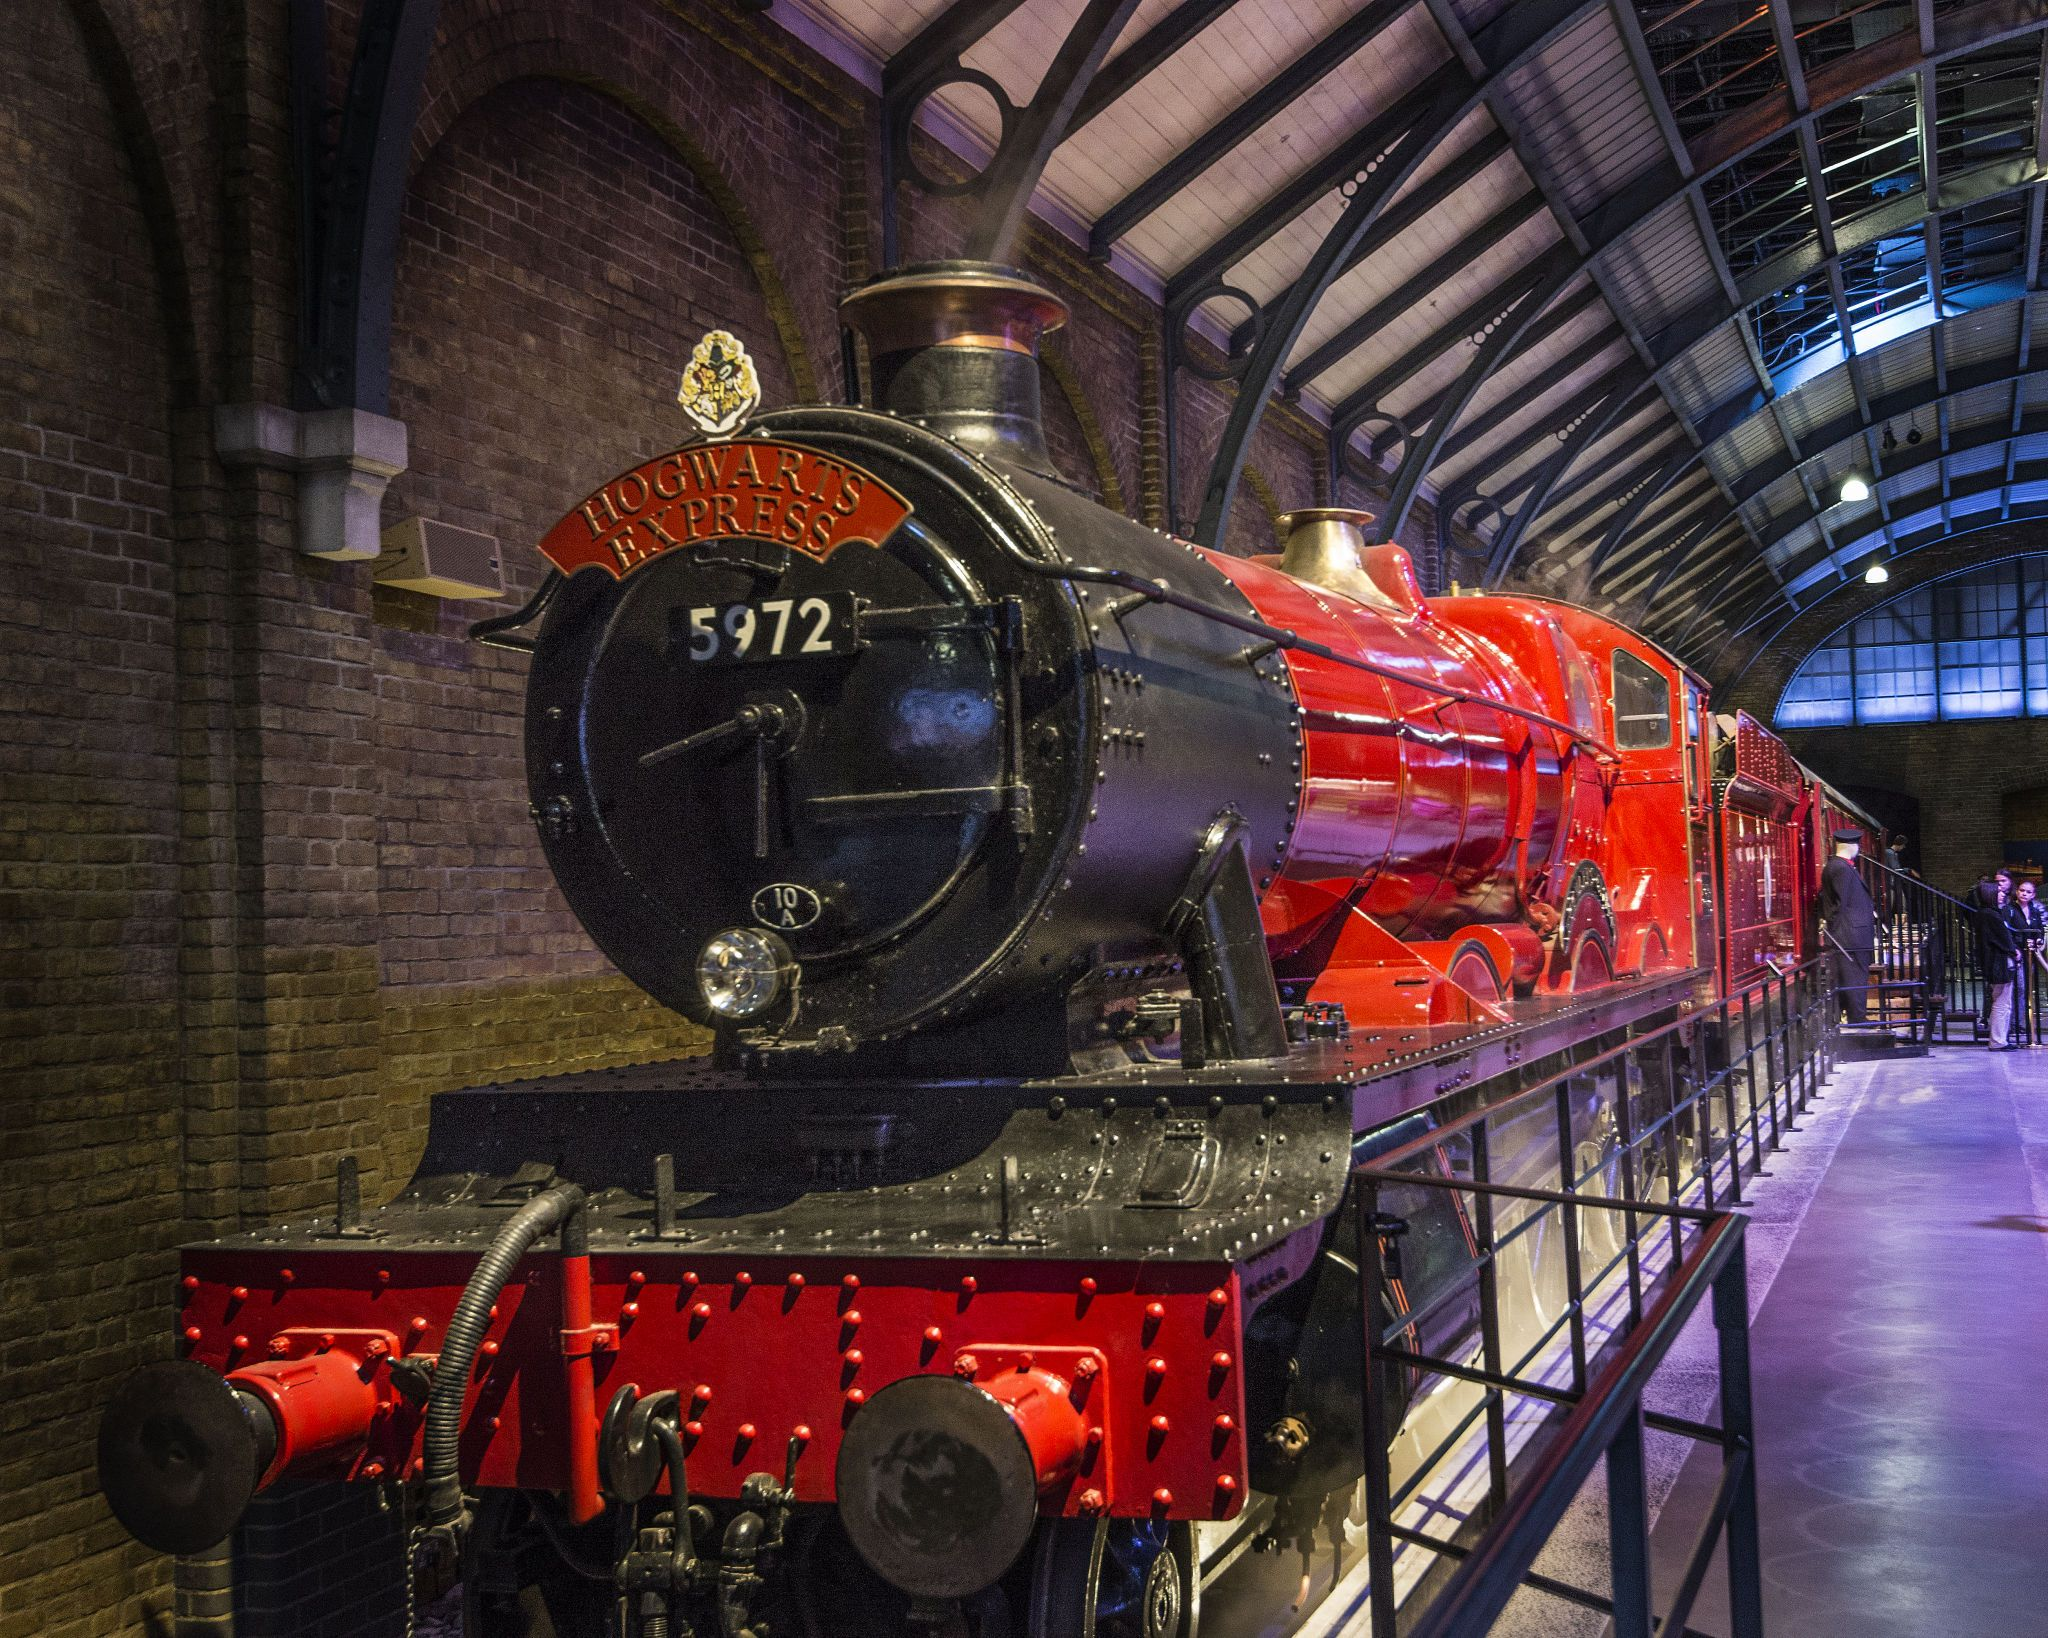 d48287f38ab000478361ca8120928407 - How Do I Get To Harry Potter World From London By Train